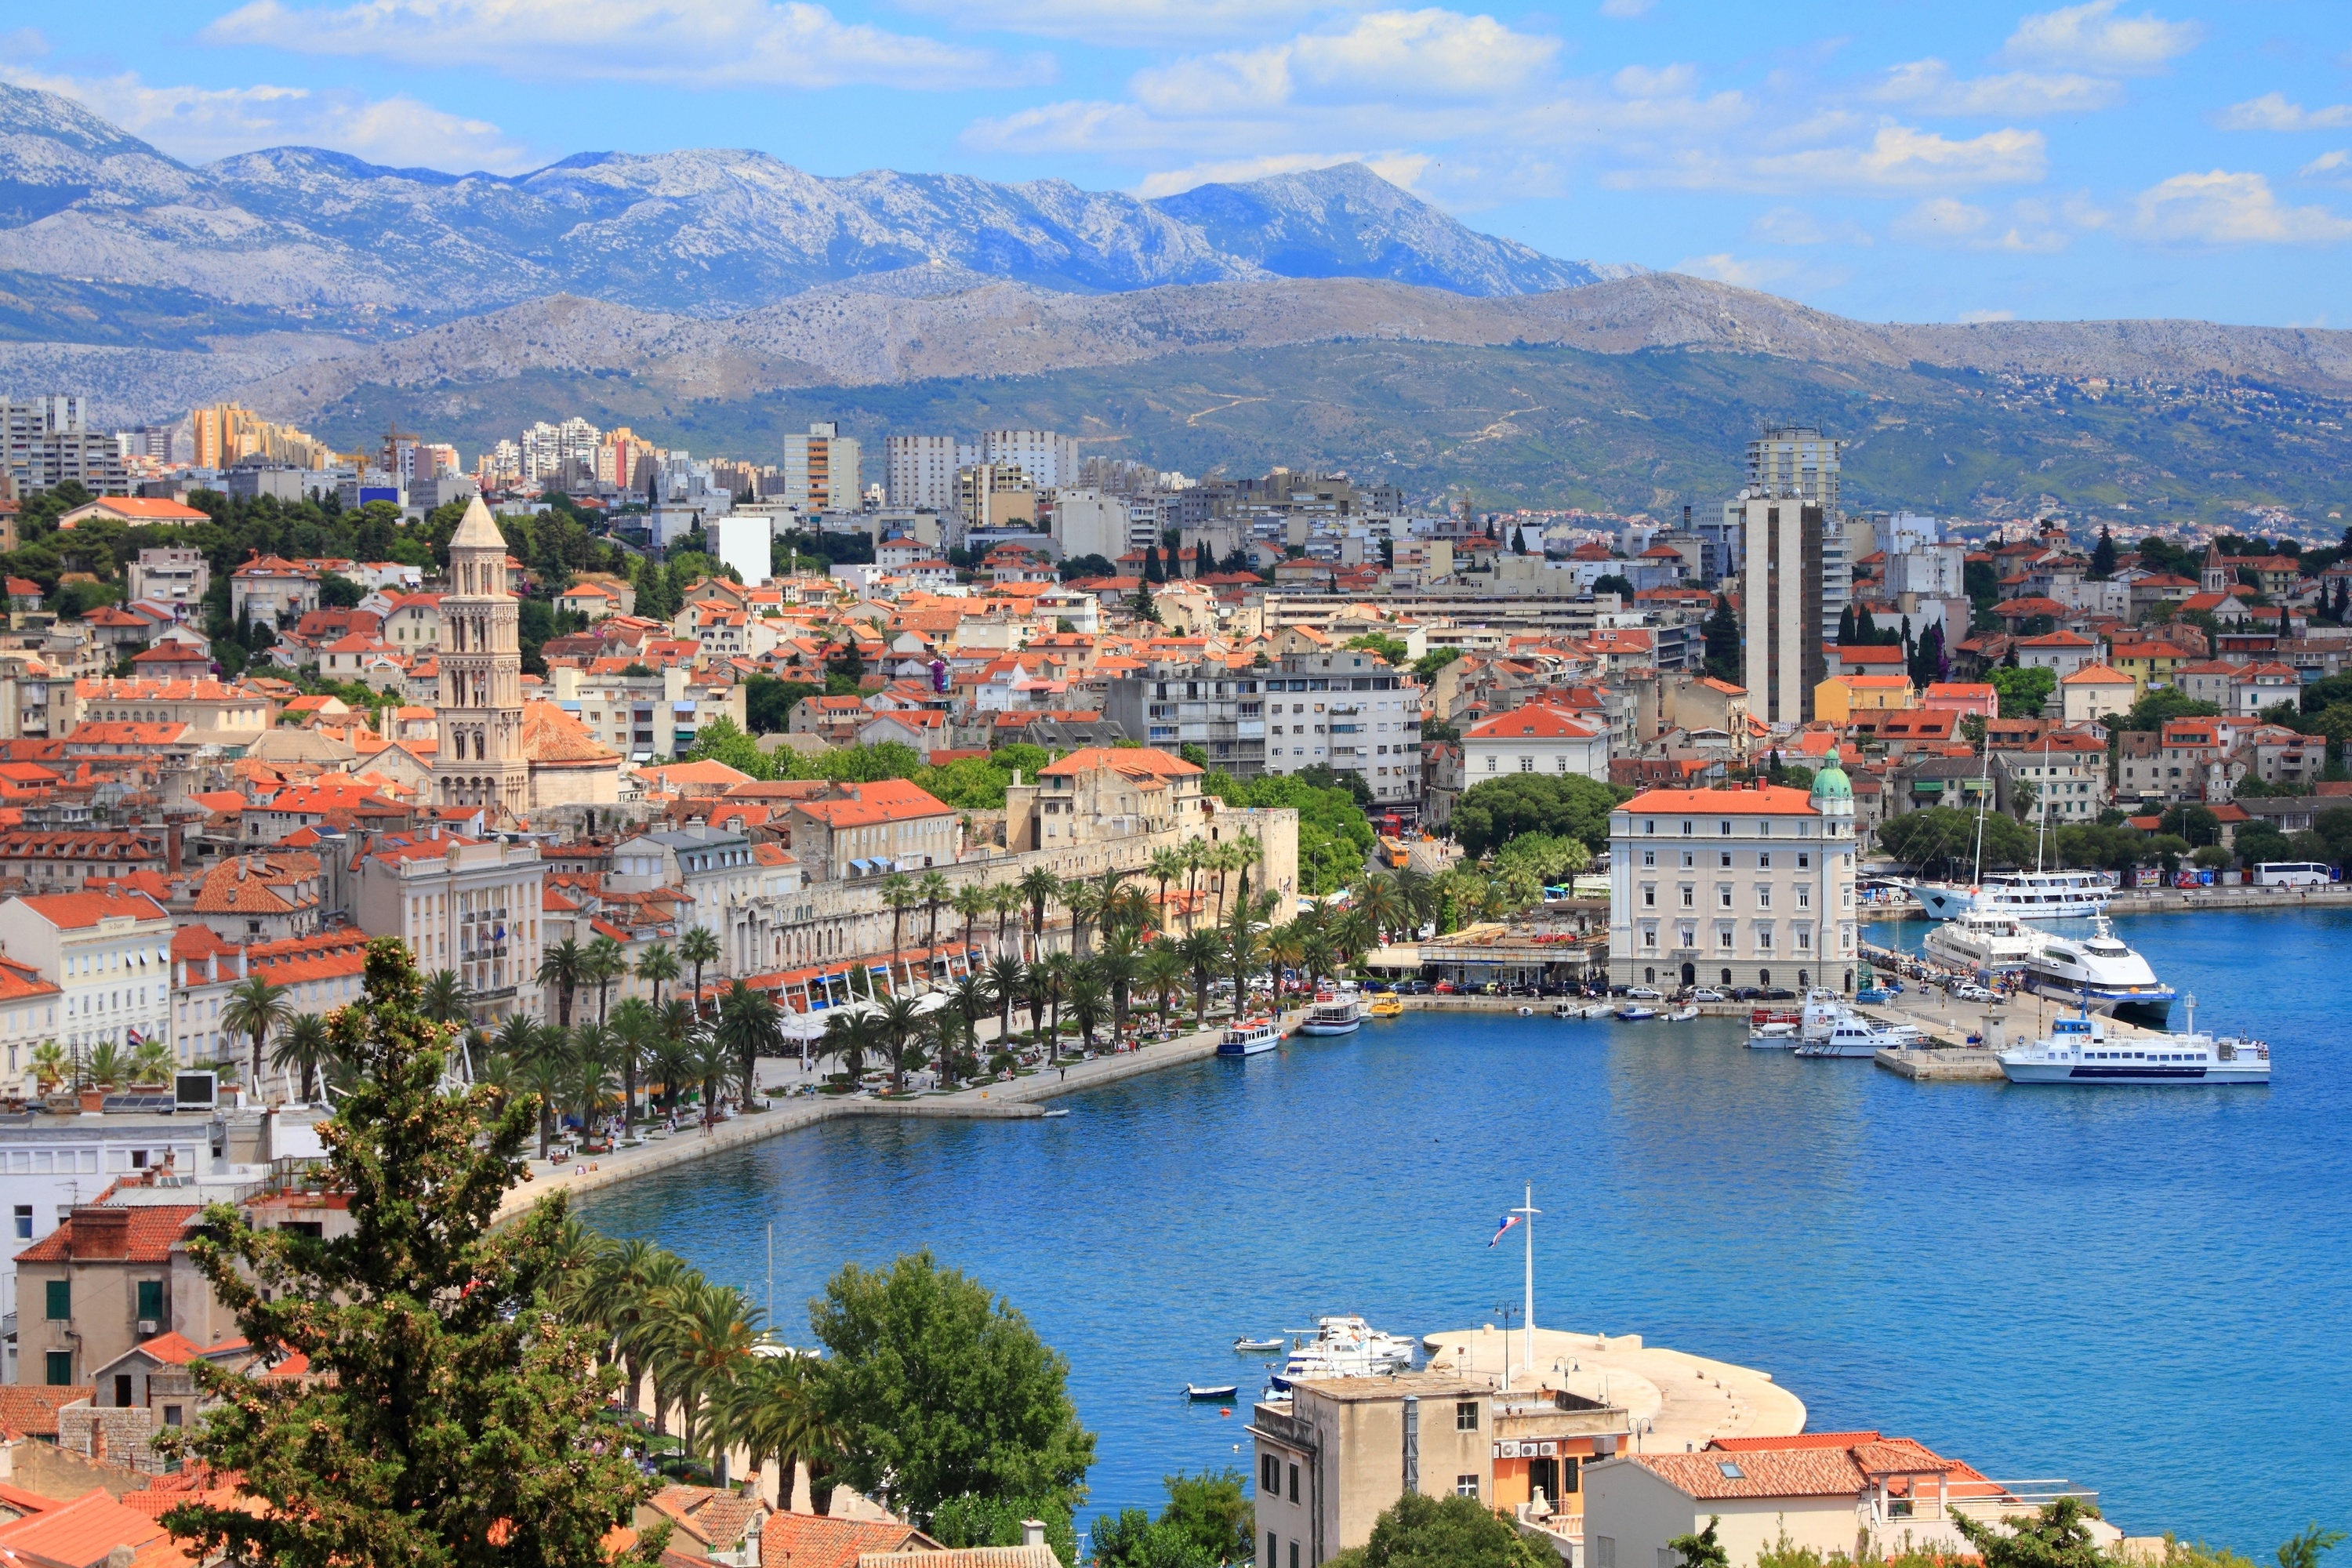 How to get from Zagreb to Split